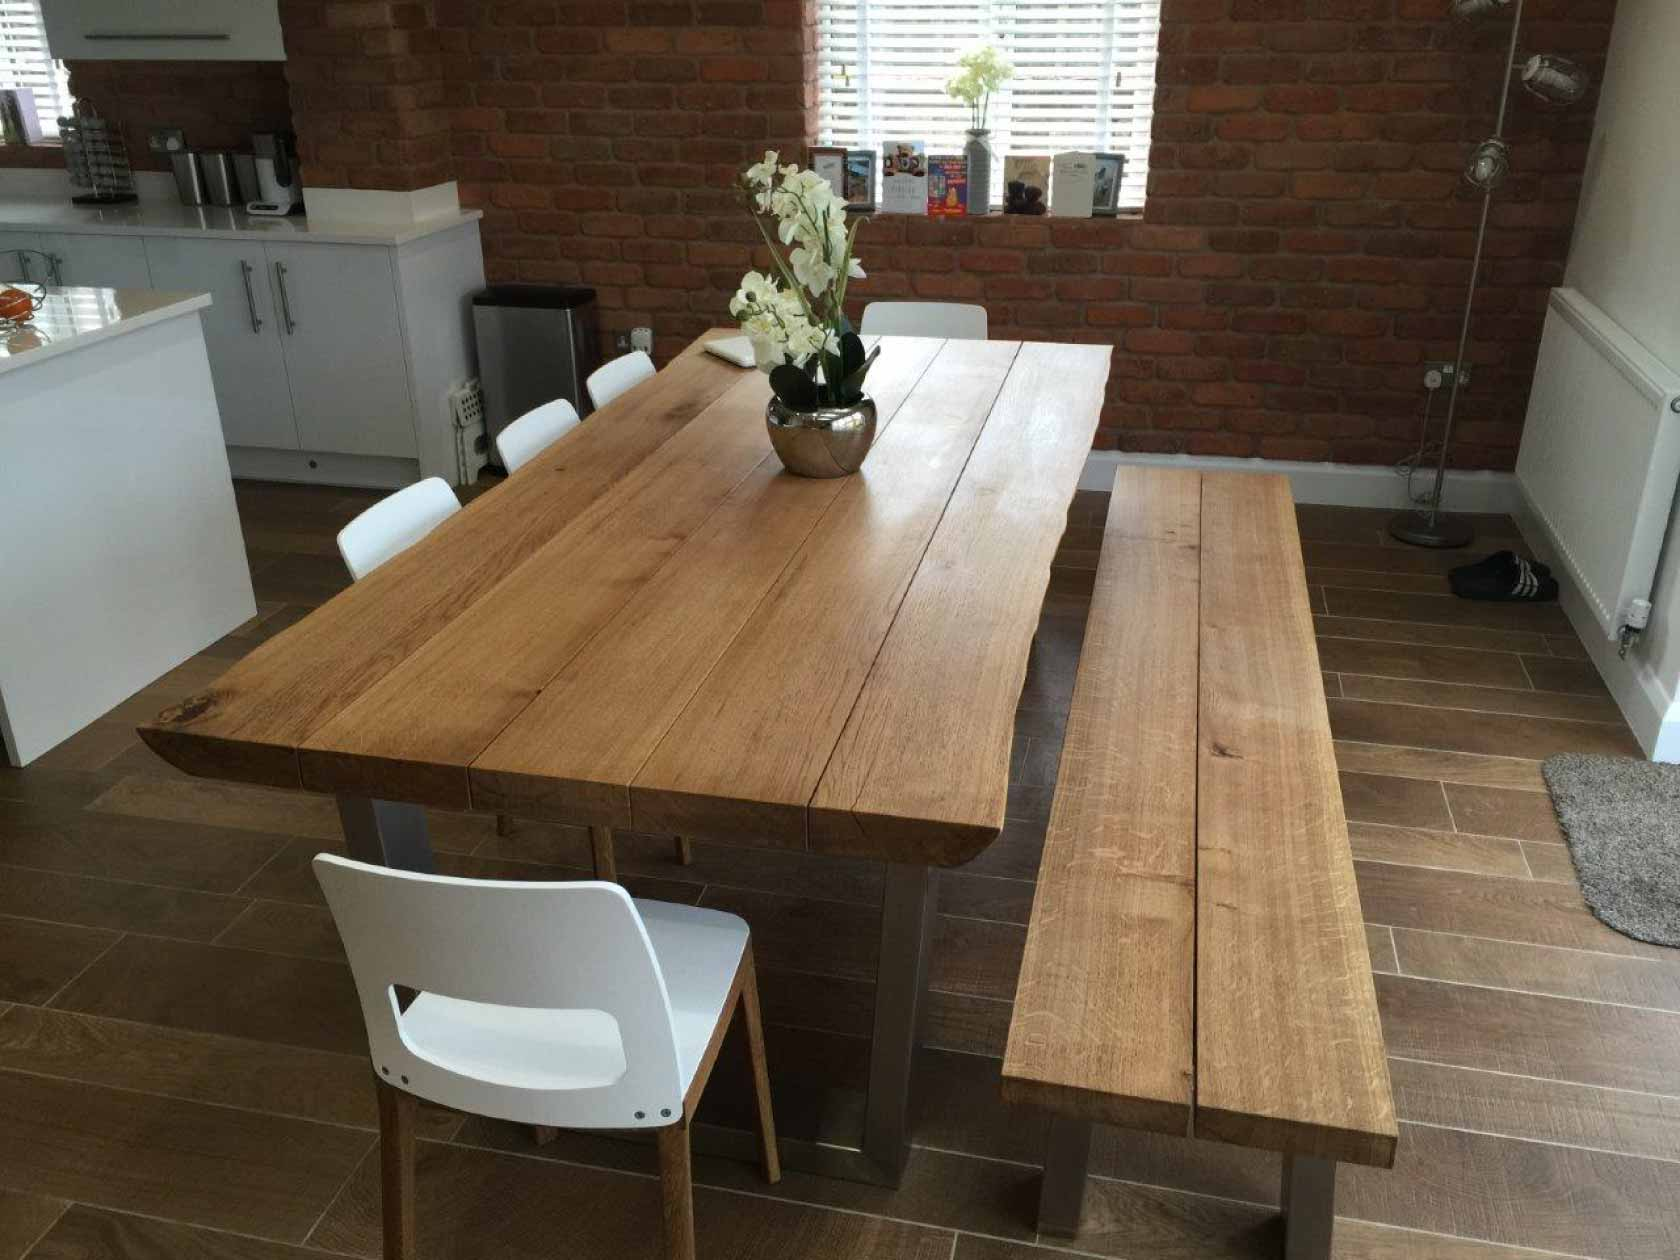 rustic-dinng-table-with-bench-from-abacus-tables-full-full-dining-set-project-341